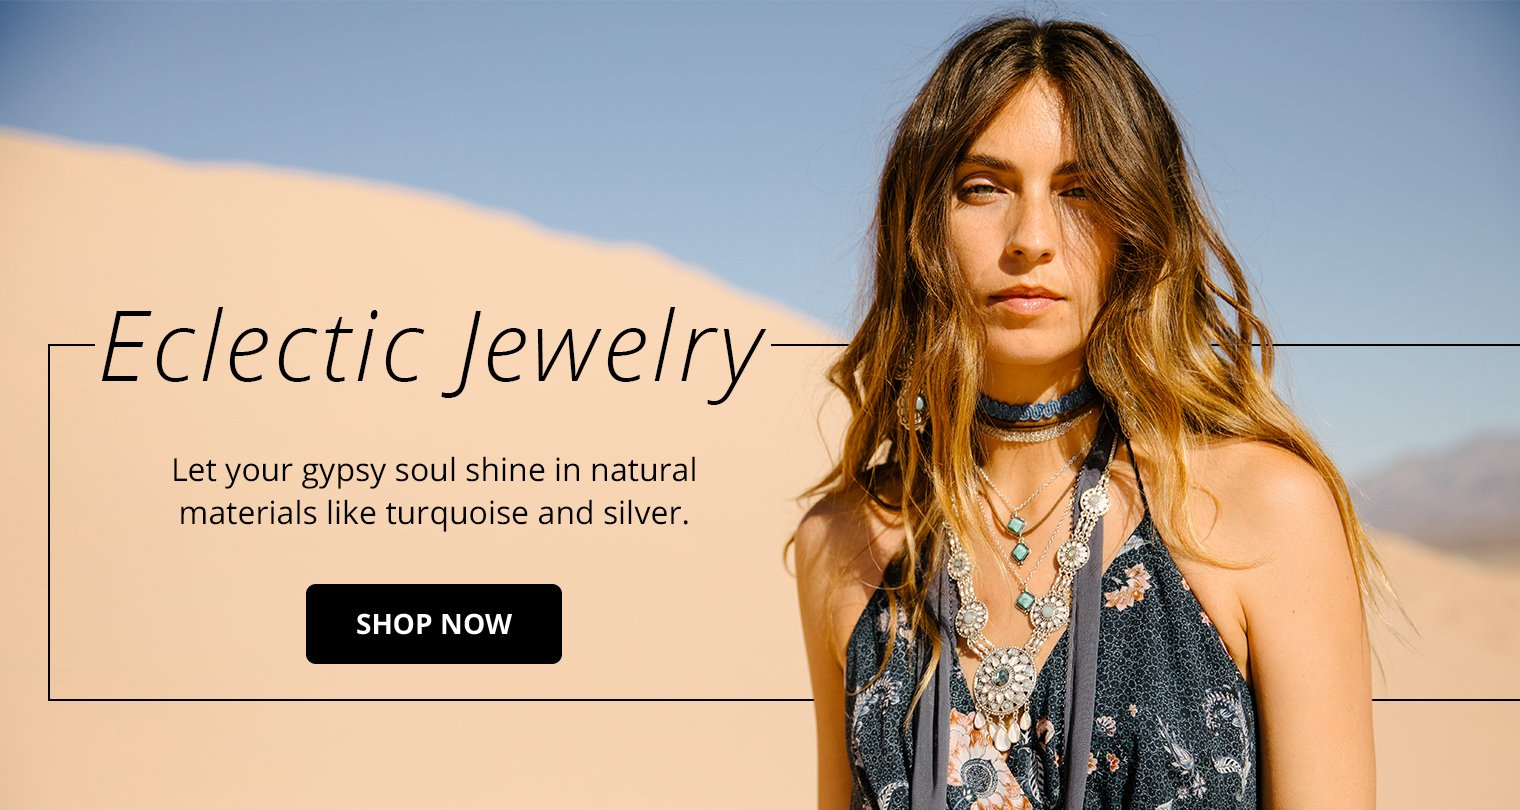 Eclectic Jewelry. Let your gypsy soul shine in natural materials like turquoise and silver. Shop Now.